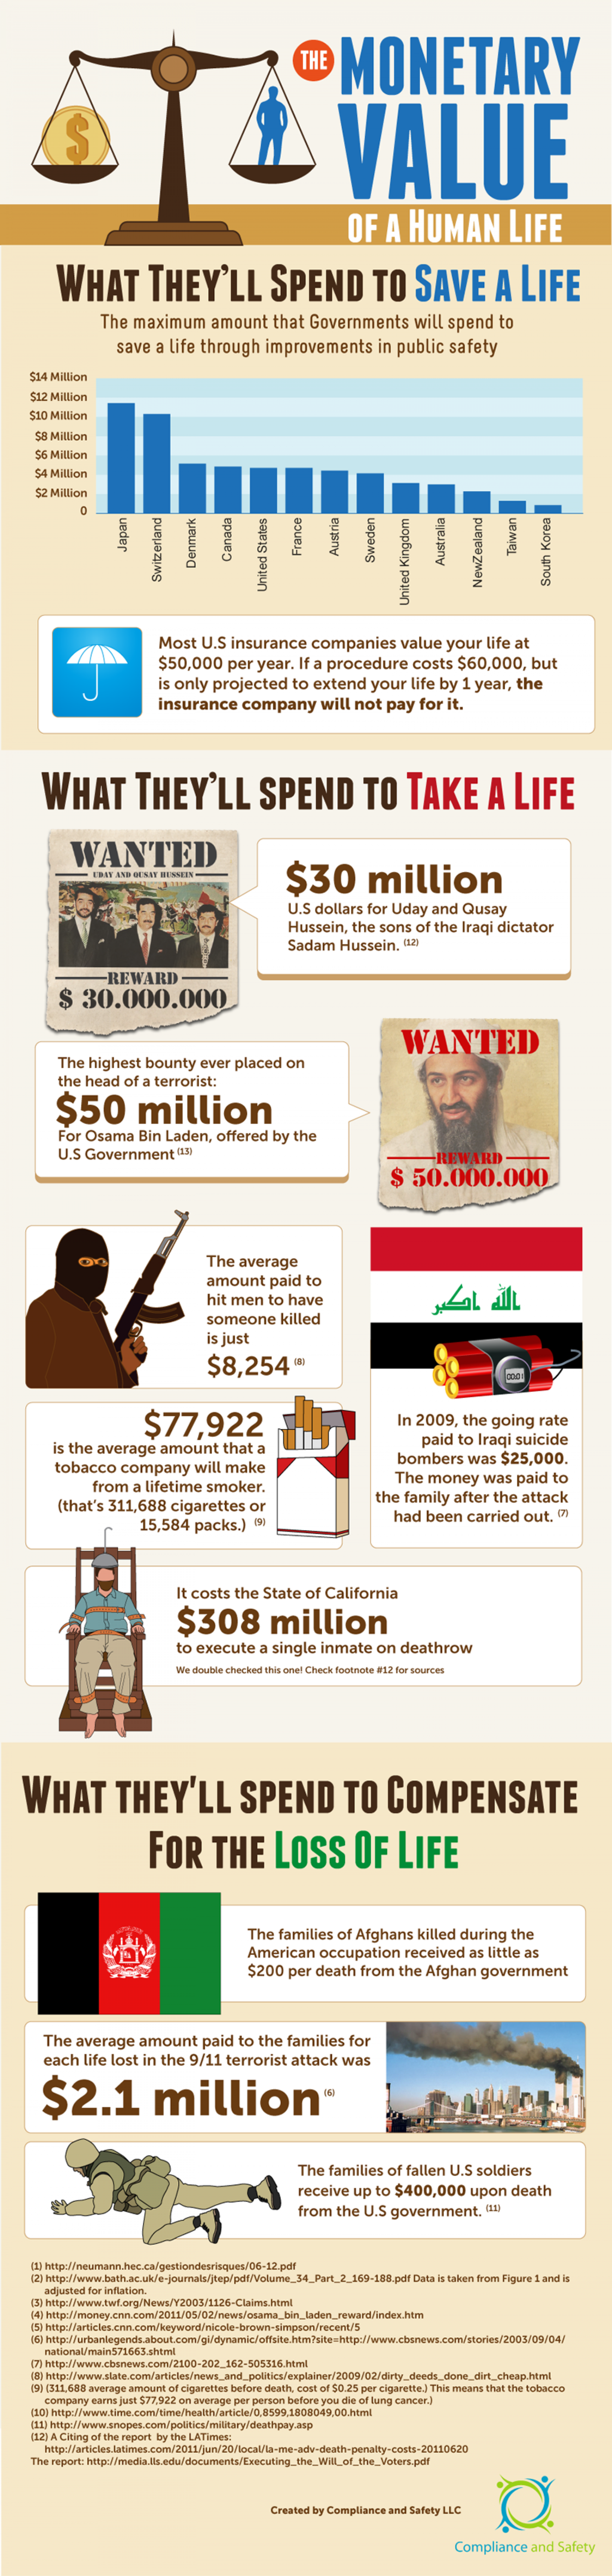 The Monetary Value of a Human Life Infographic